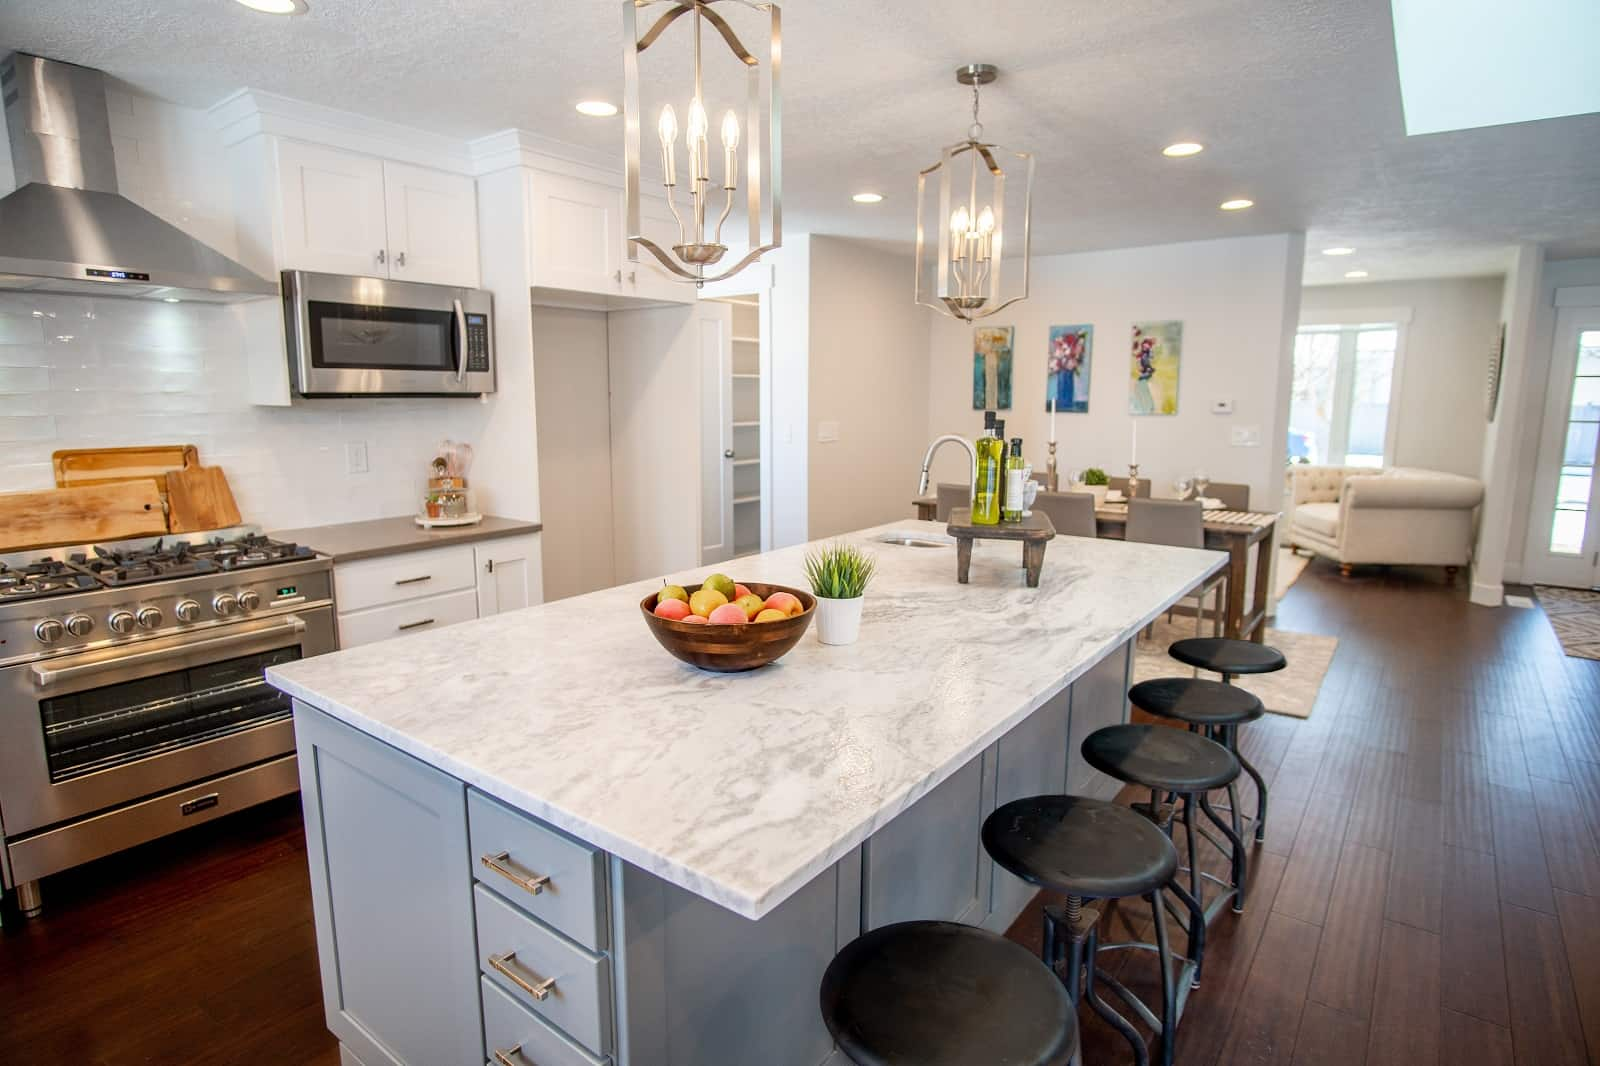 5 Reasons You Should Remodel Your Home Now. Chalet touch of the contemporary styled kitchen with large marble-topped central island and black round bar stools